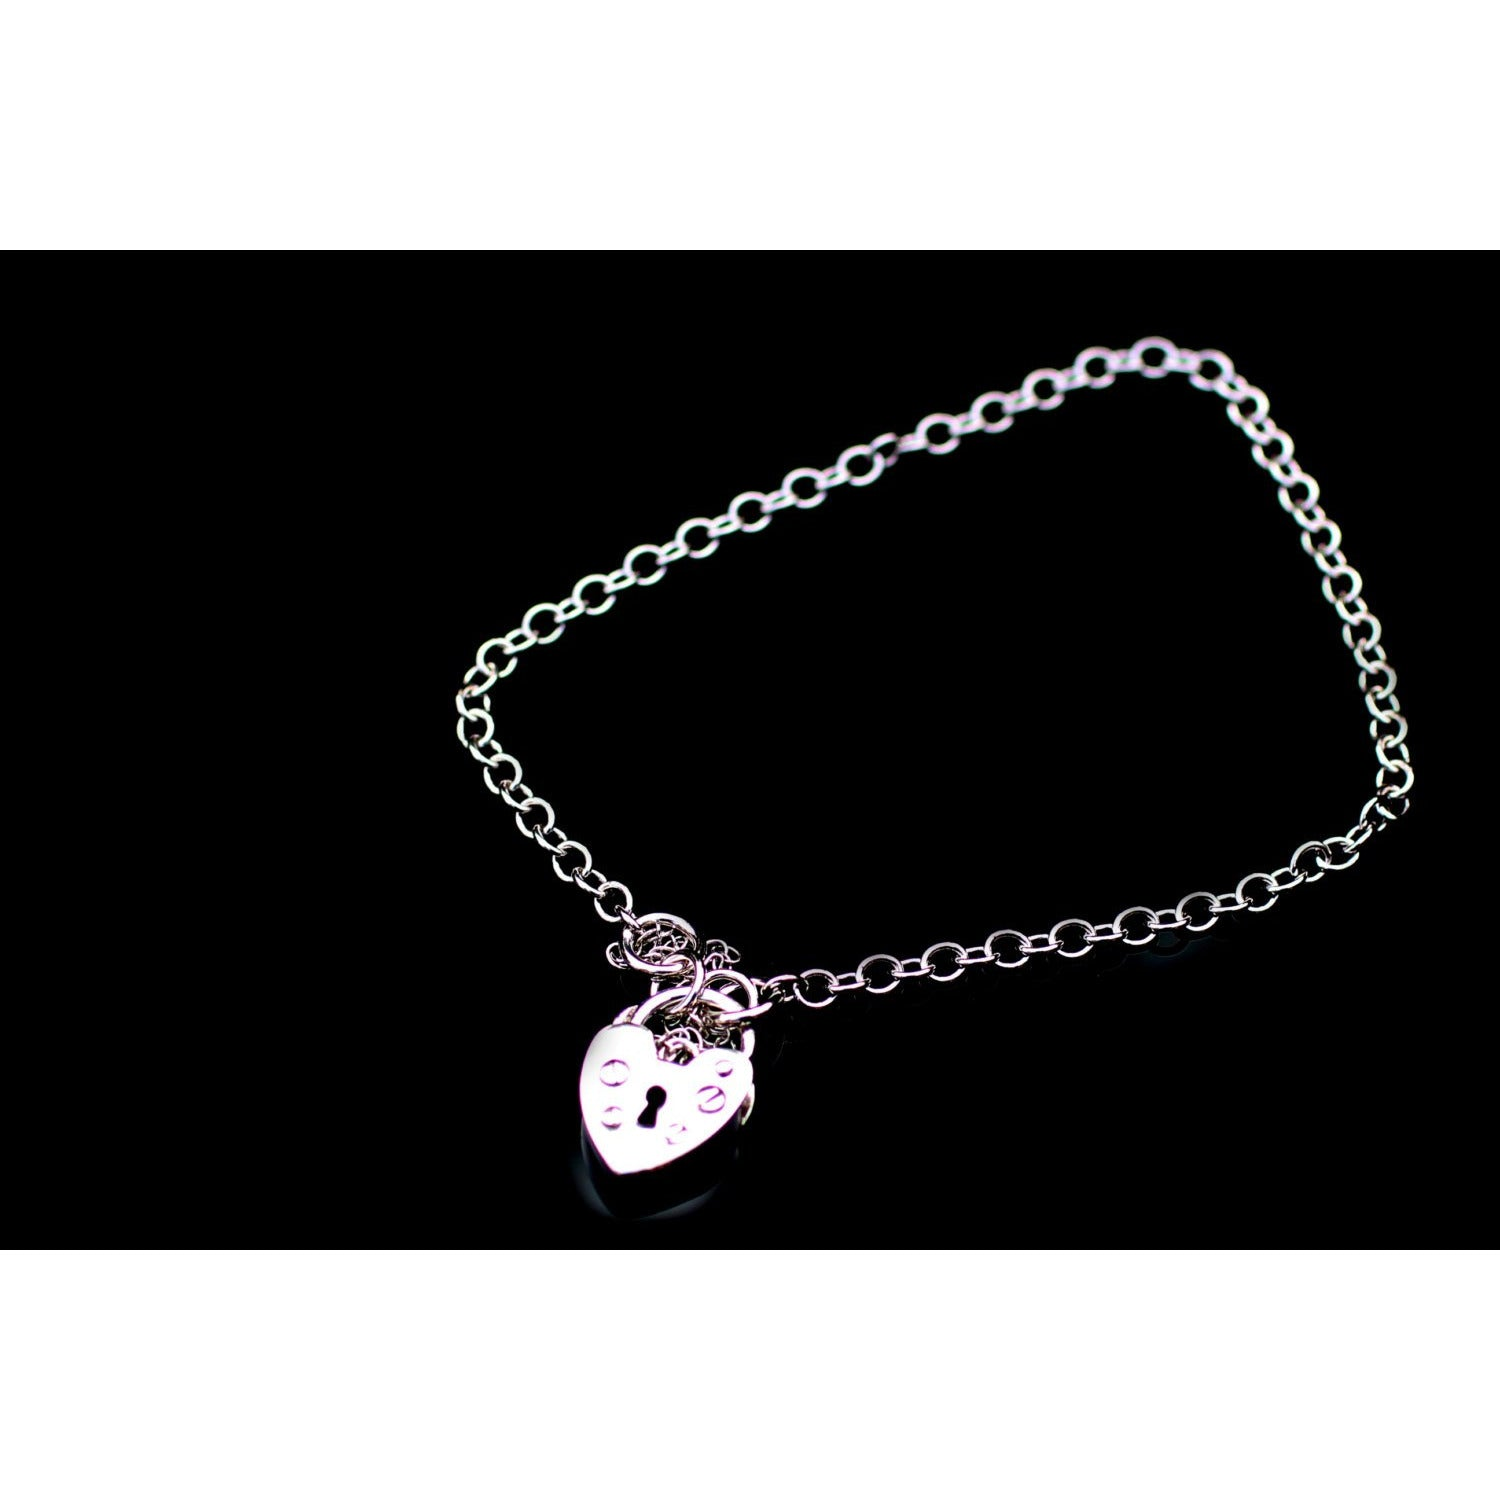 VINTAGE STYLE HEART PADLOCK CLASP, BRACELET AND CHAIN STERLING SILVER.